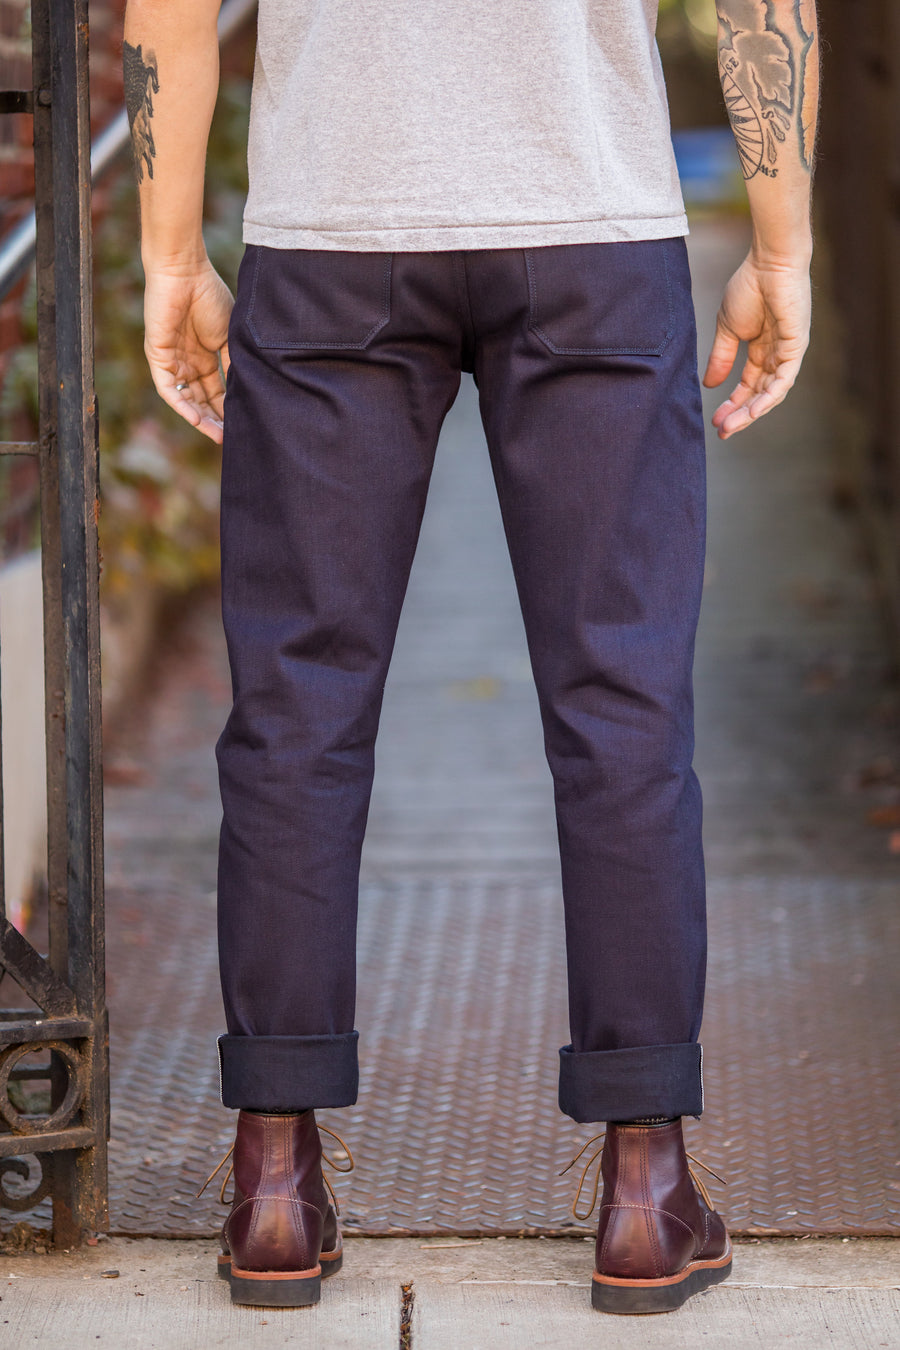 Freenote Cloth Portola Taper - 14.75oz. Blue Black Denim - Franklin & Poe